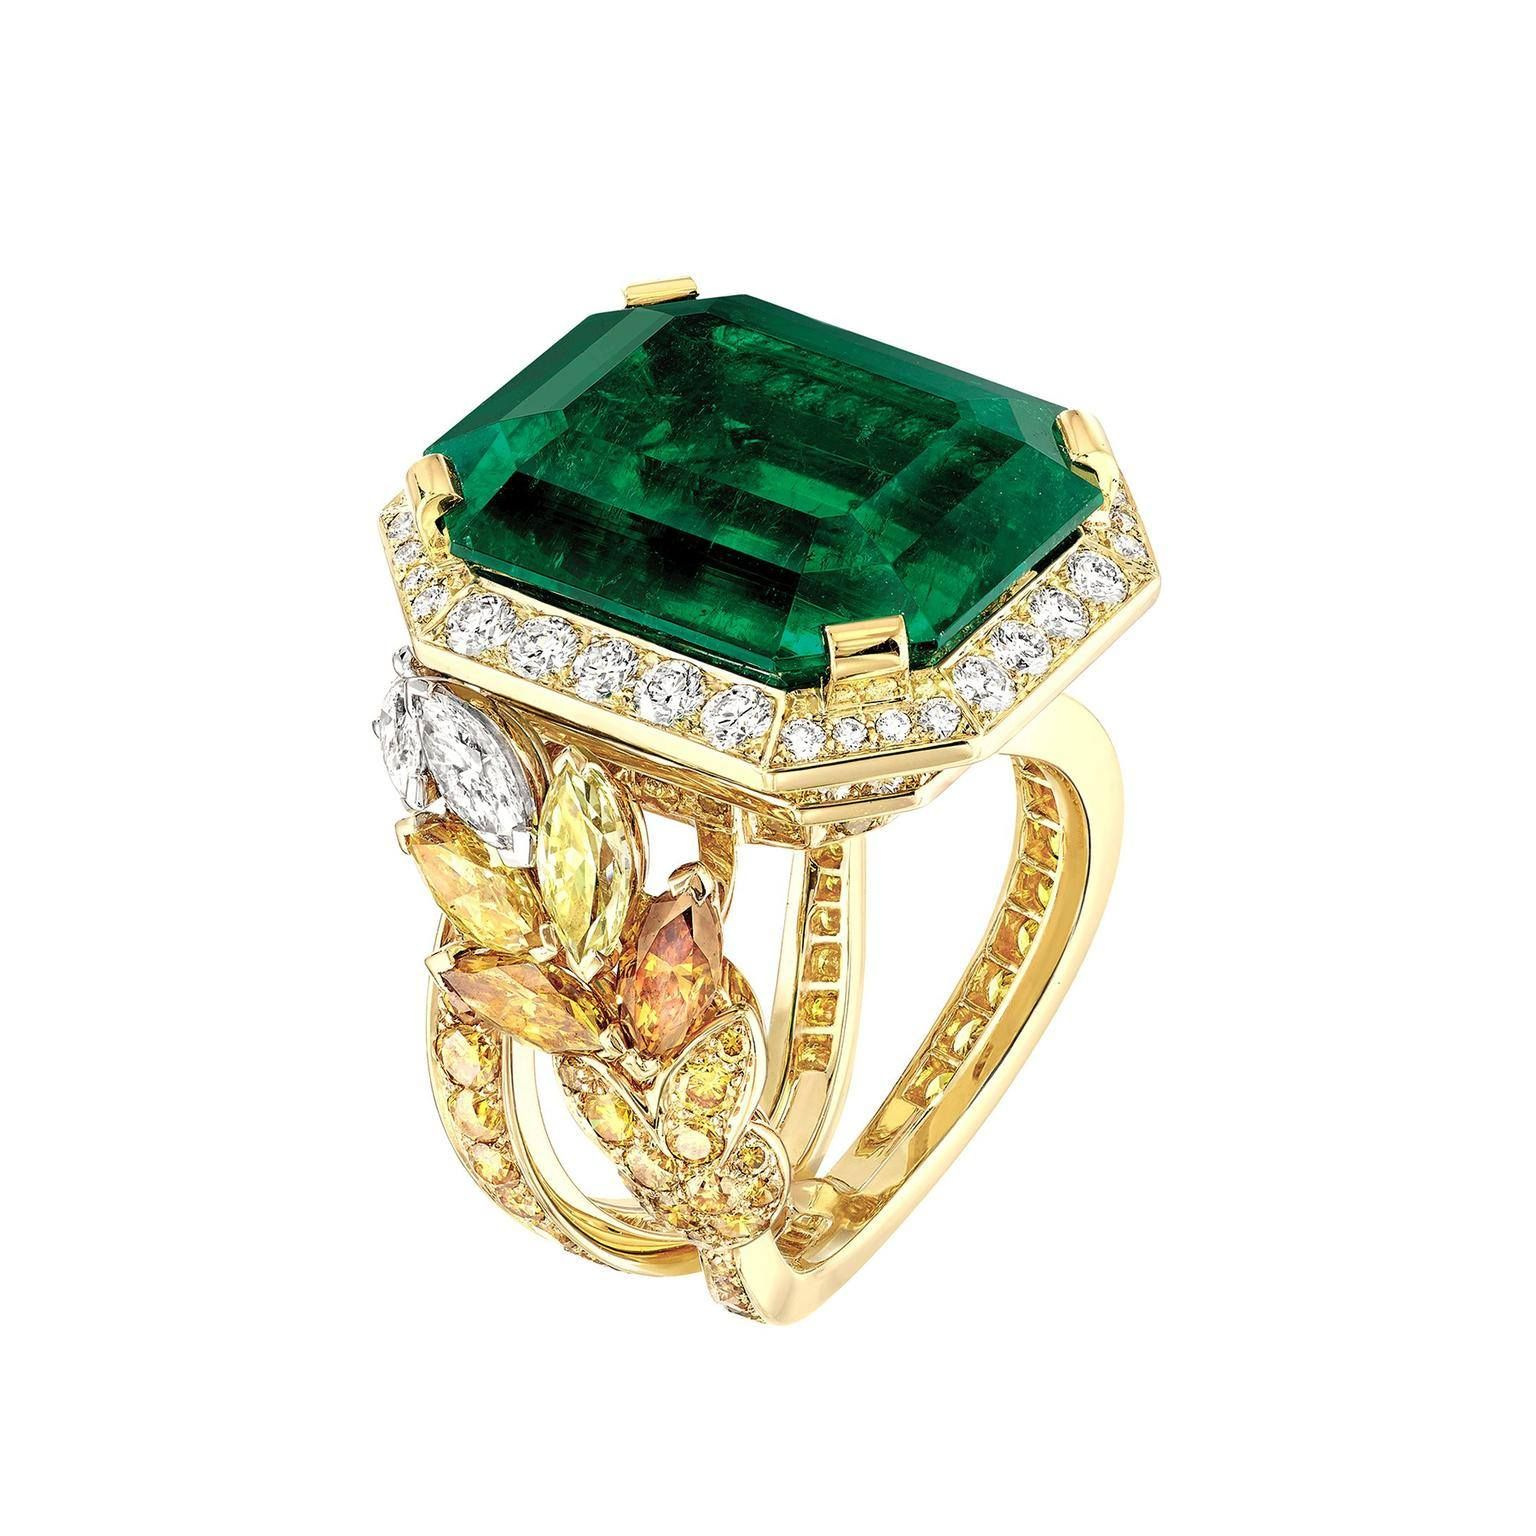 This Chanel ring features a velvety green Colombian Muzo emerald set in yellow gold, with a wheat sheaf design in marquise-cut fancy coloured diamonds. Wheat is the central motif in the Chanel Les Blés collection and symbolises prosperity and wealth.